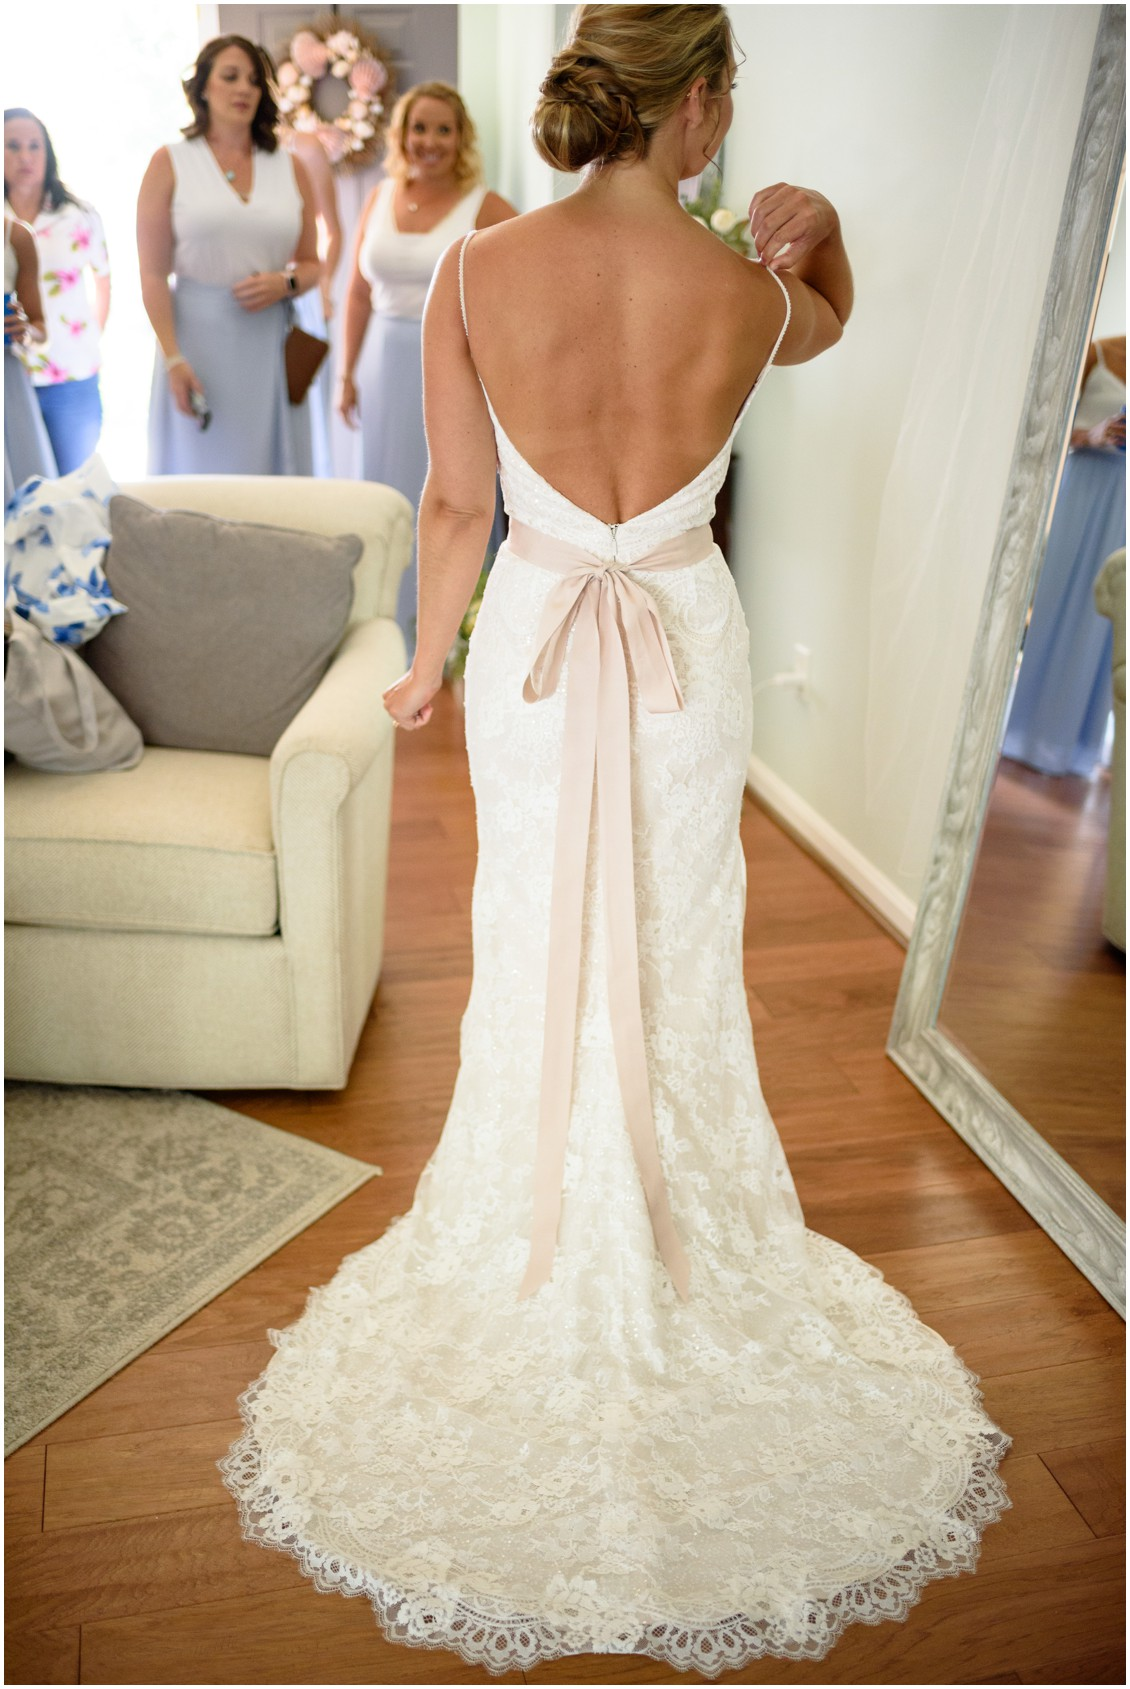 Bride portrait from the back | My Eastern Shore Wedding | J. Nicole Photography